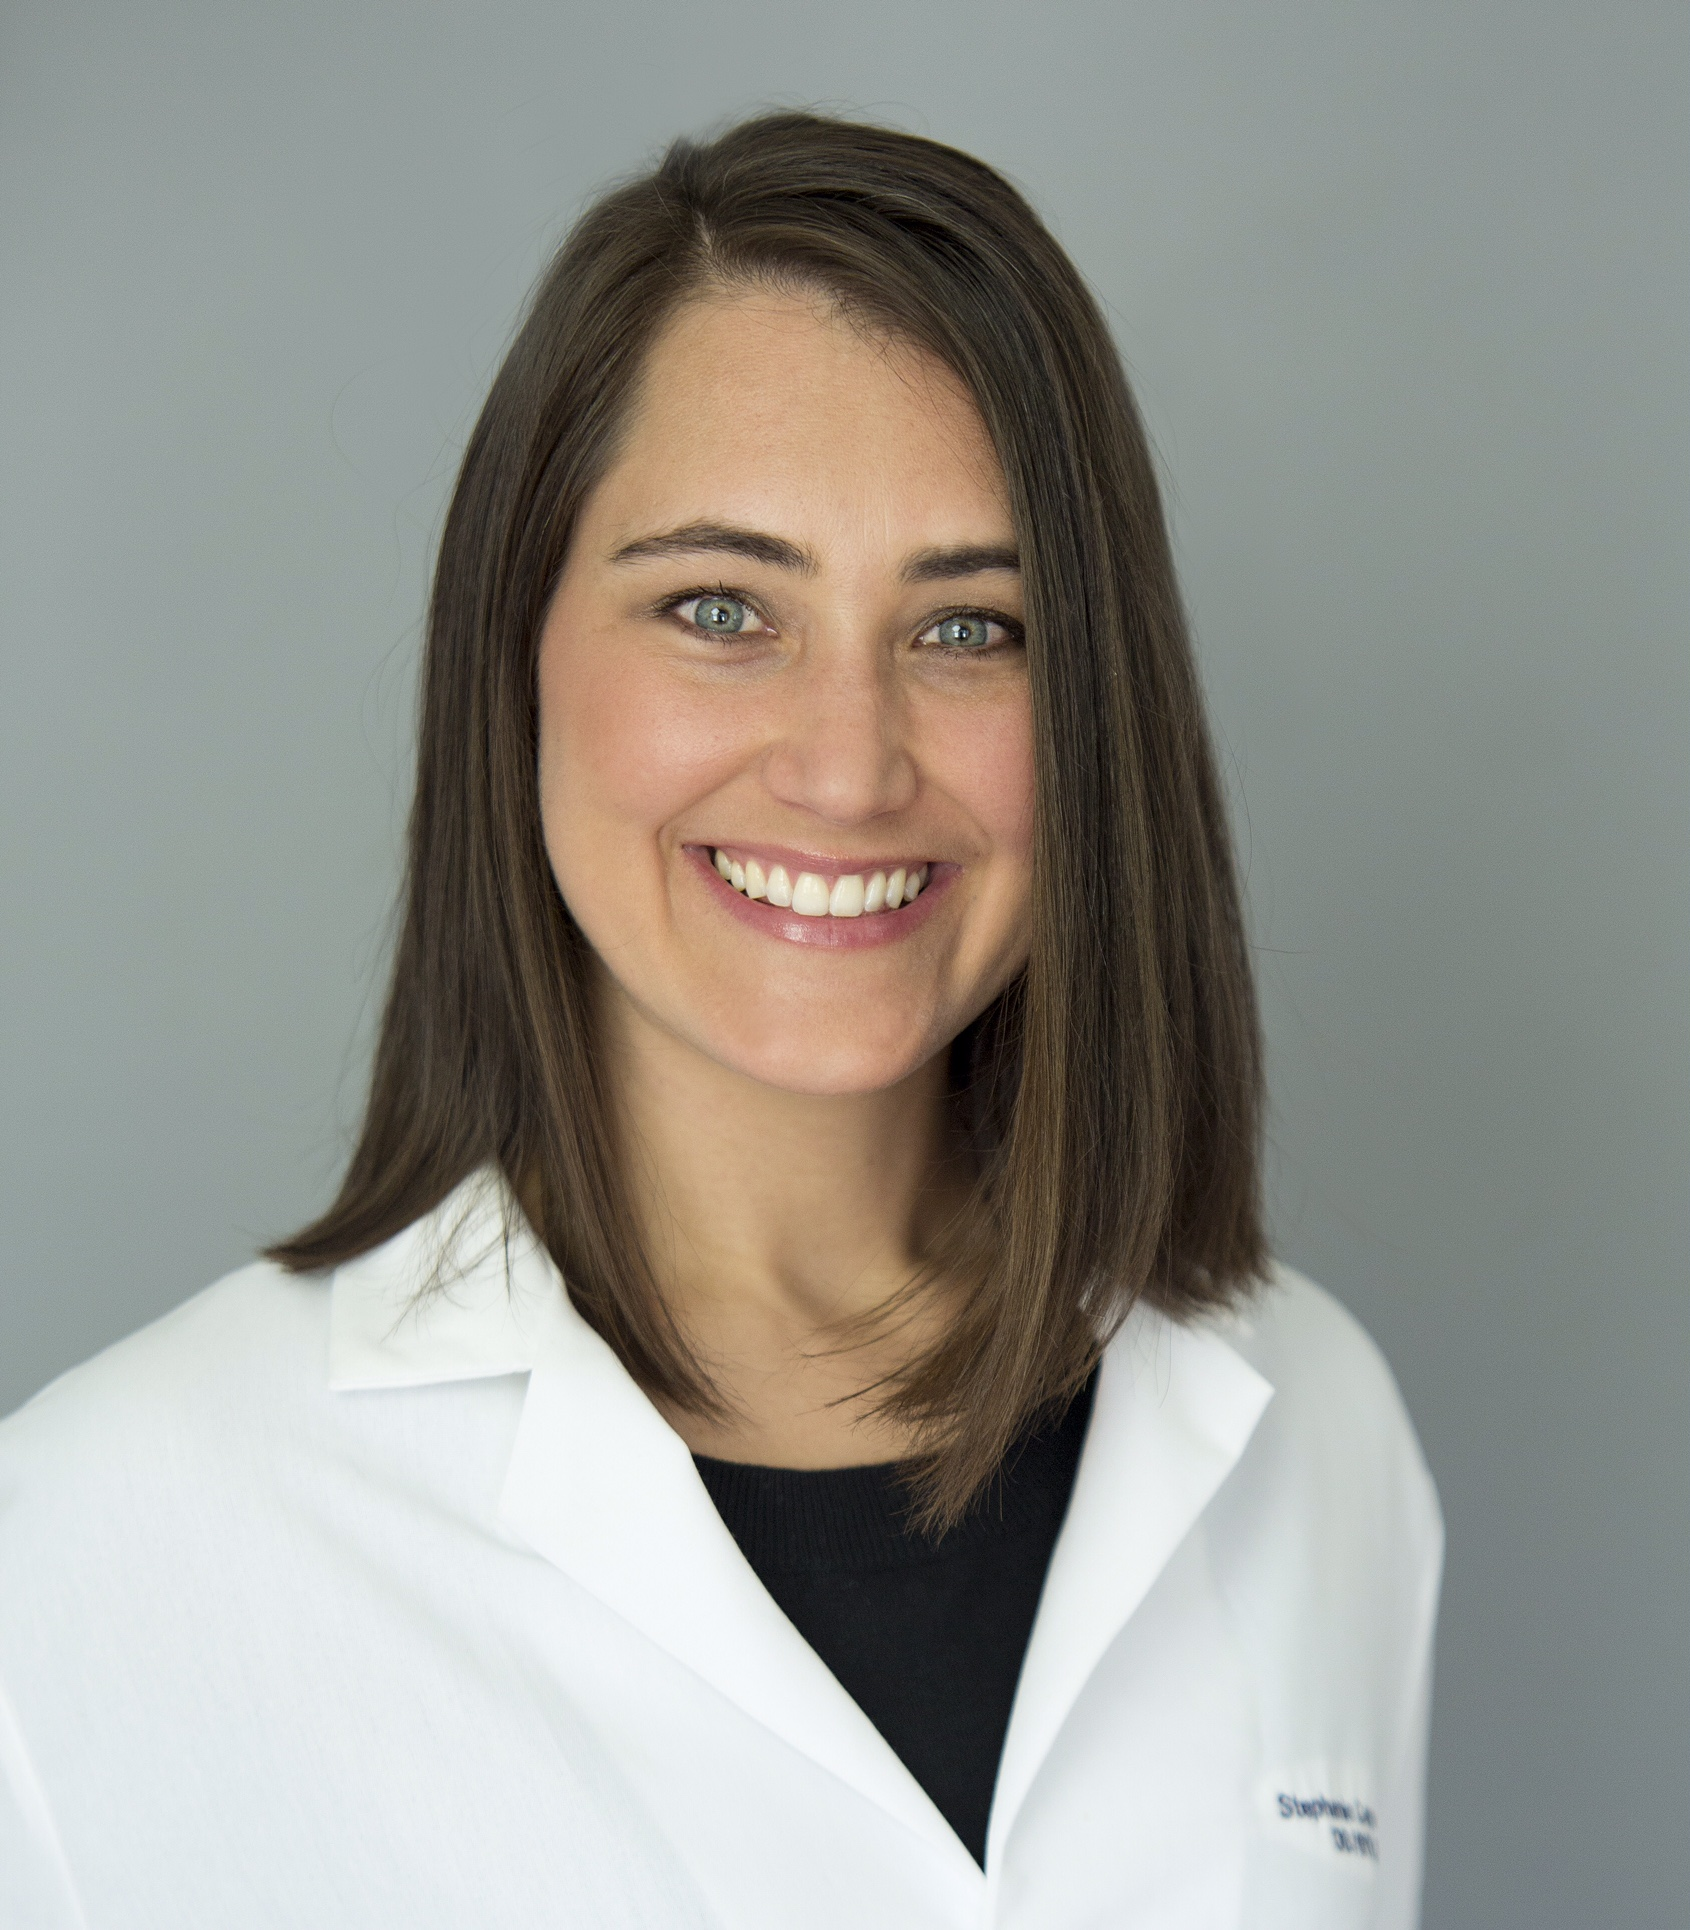 Dr. Stephanie Caywood, MD